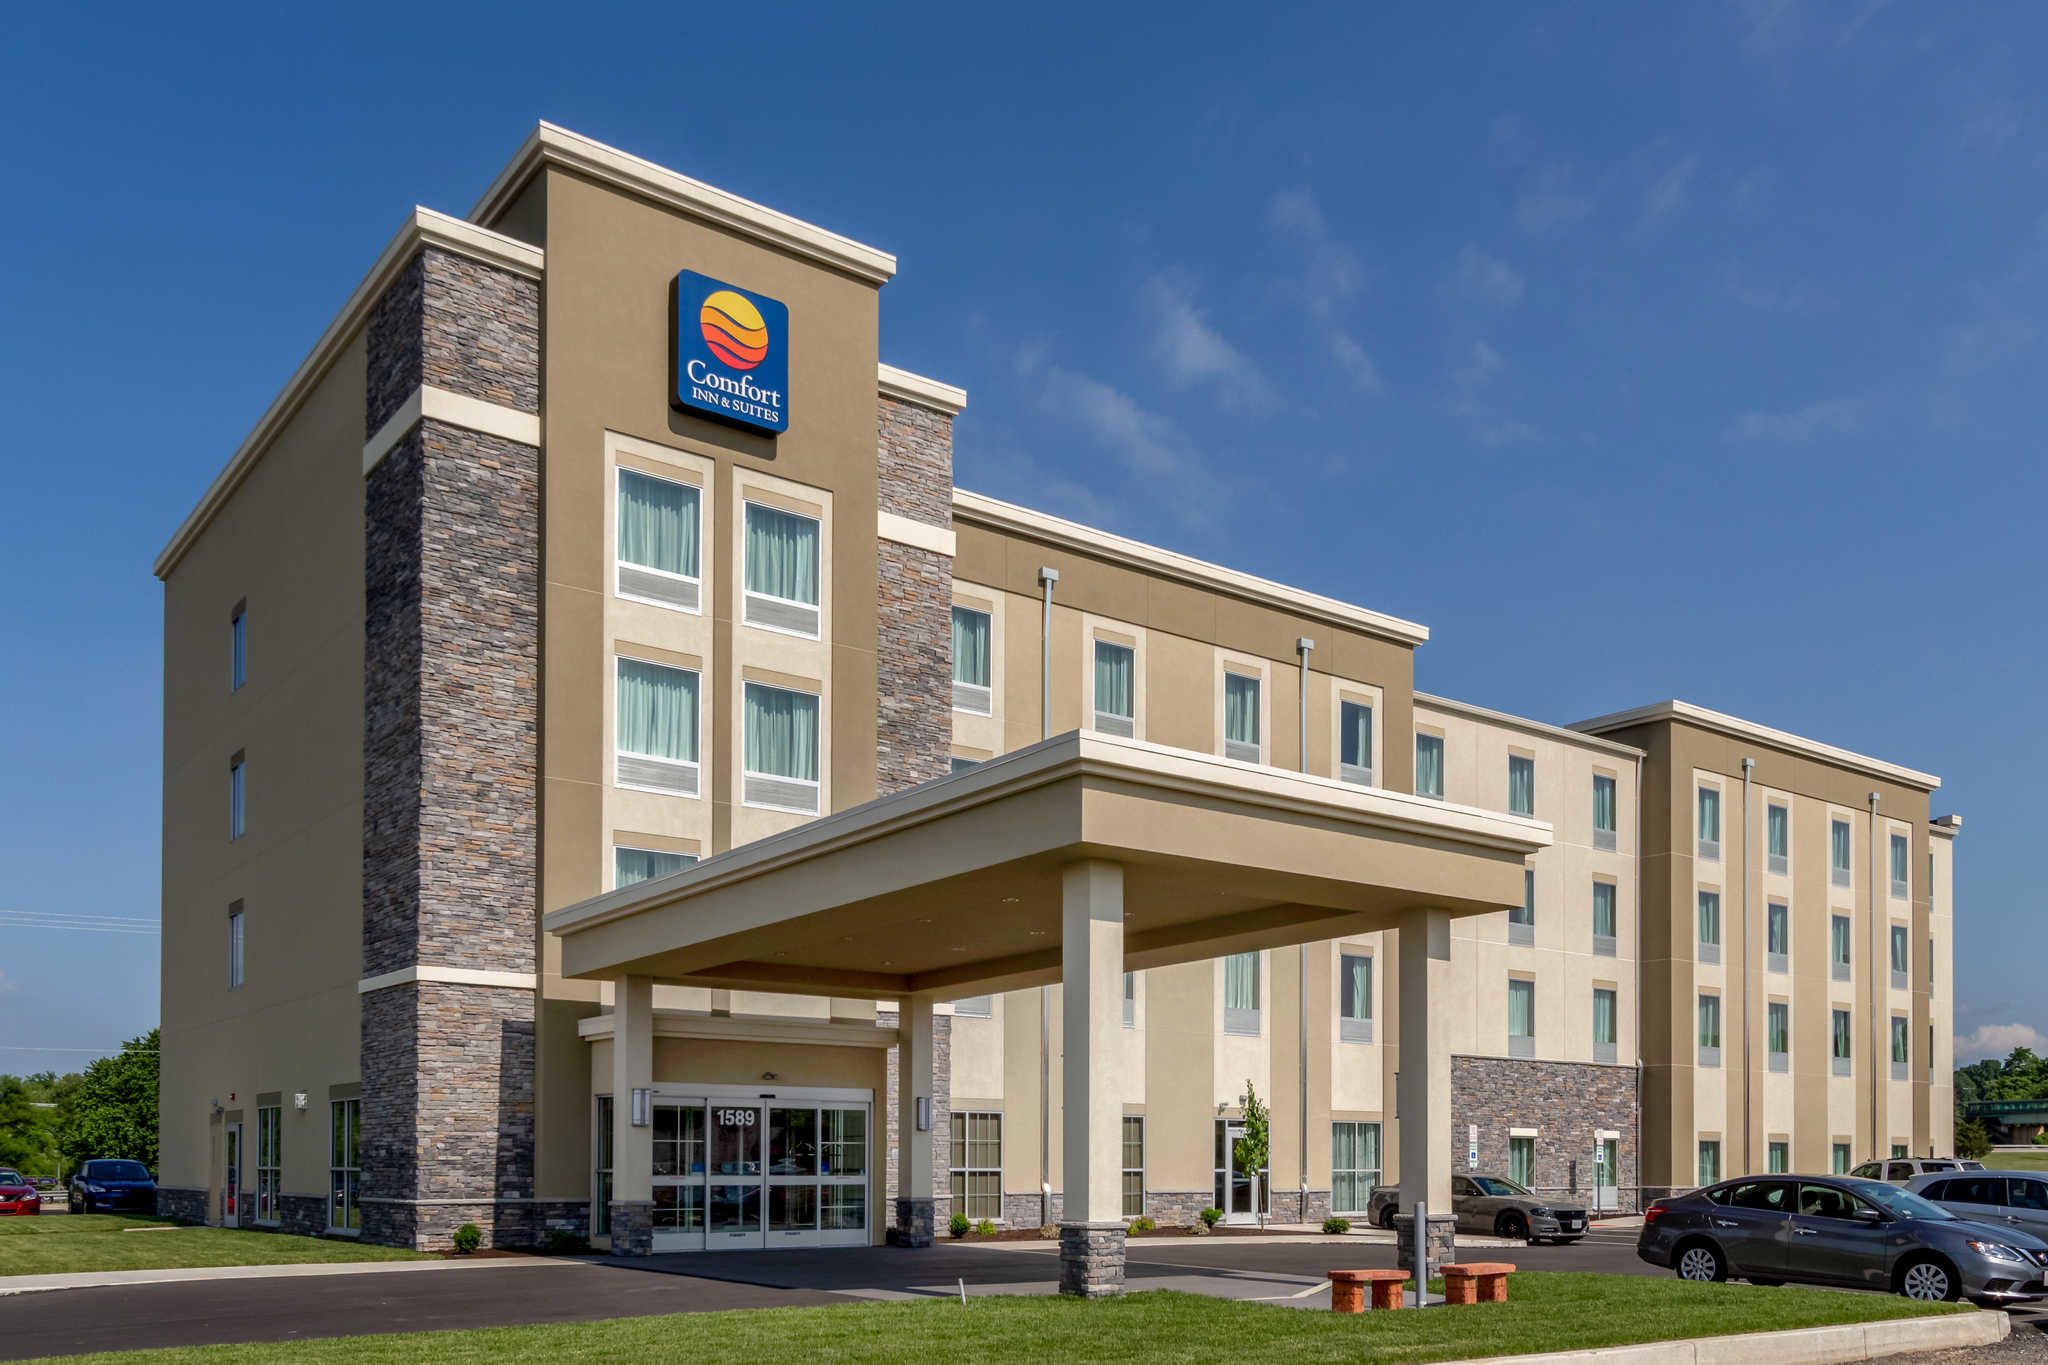 Comfort Inn & Suites - Harrisburg Airport - Hershey South image 0